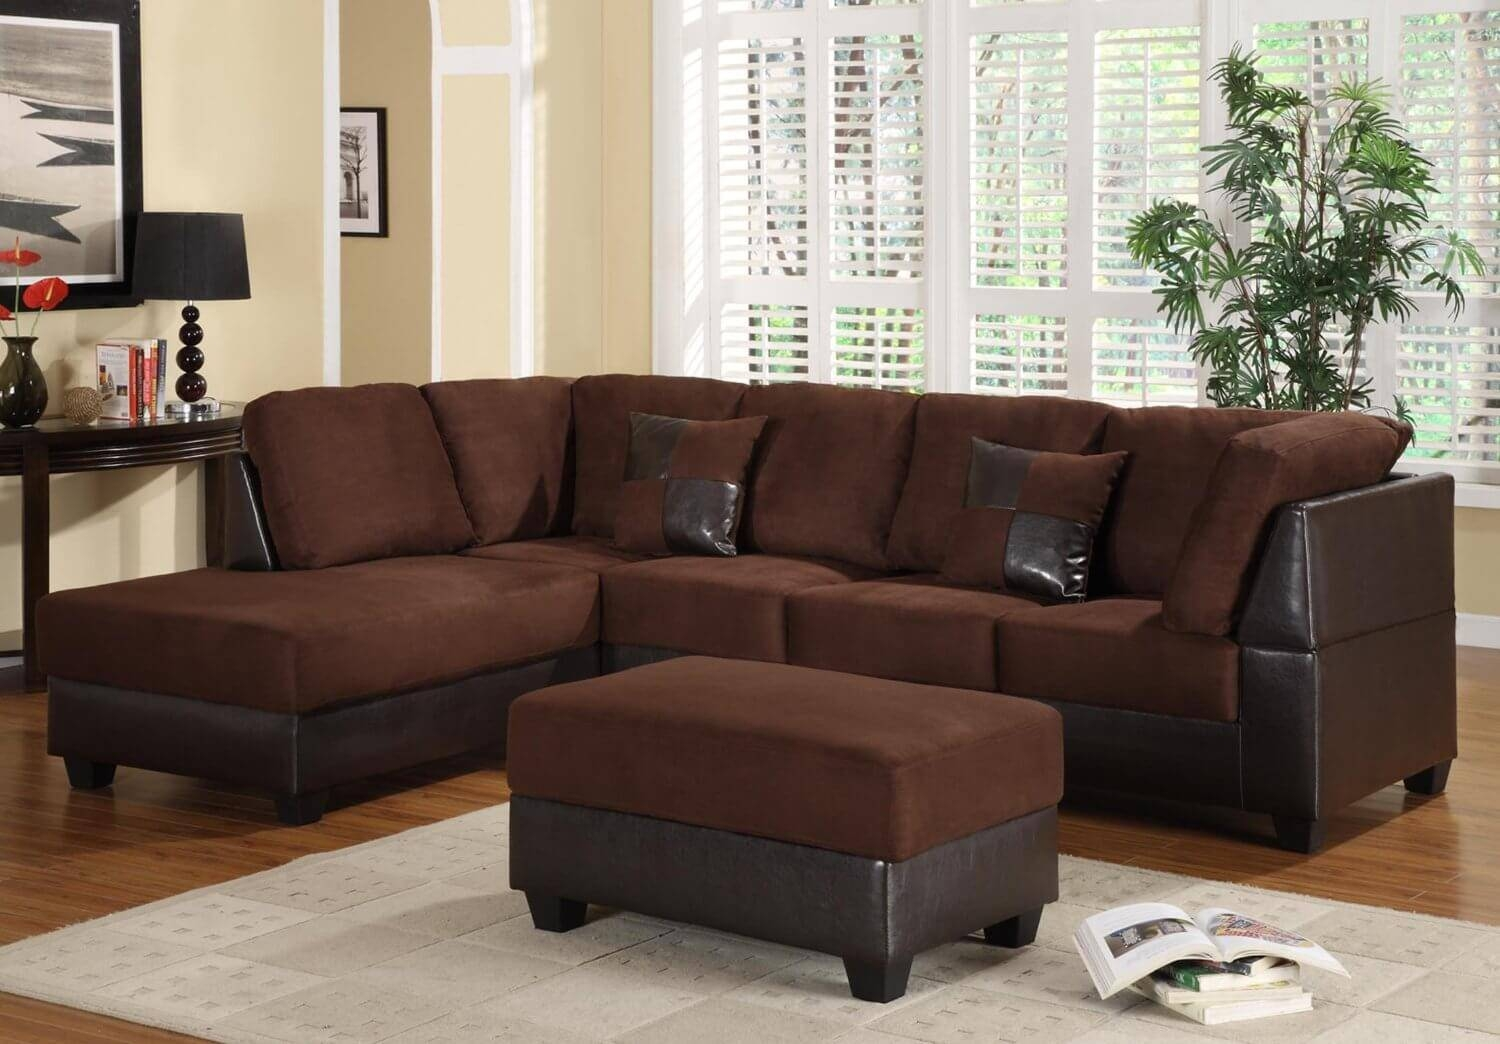 Best Sectional Sofa Under 500 19 For Your Camel Colored Sectional throughout Camel Colored Sectional Sofa : colored sectionals - Sectionals, Sofas & Couches